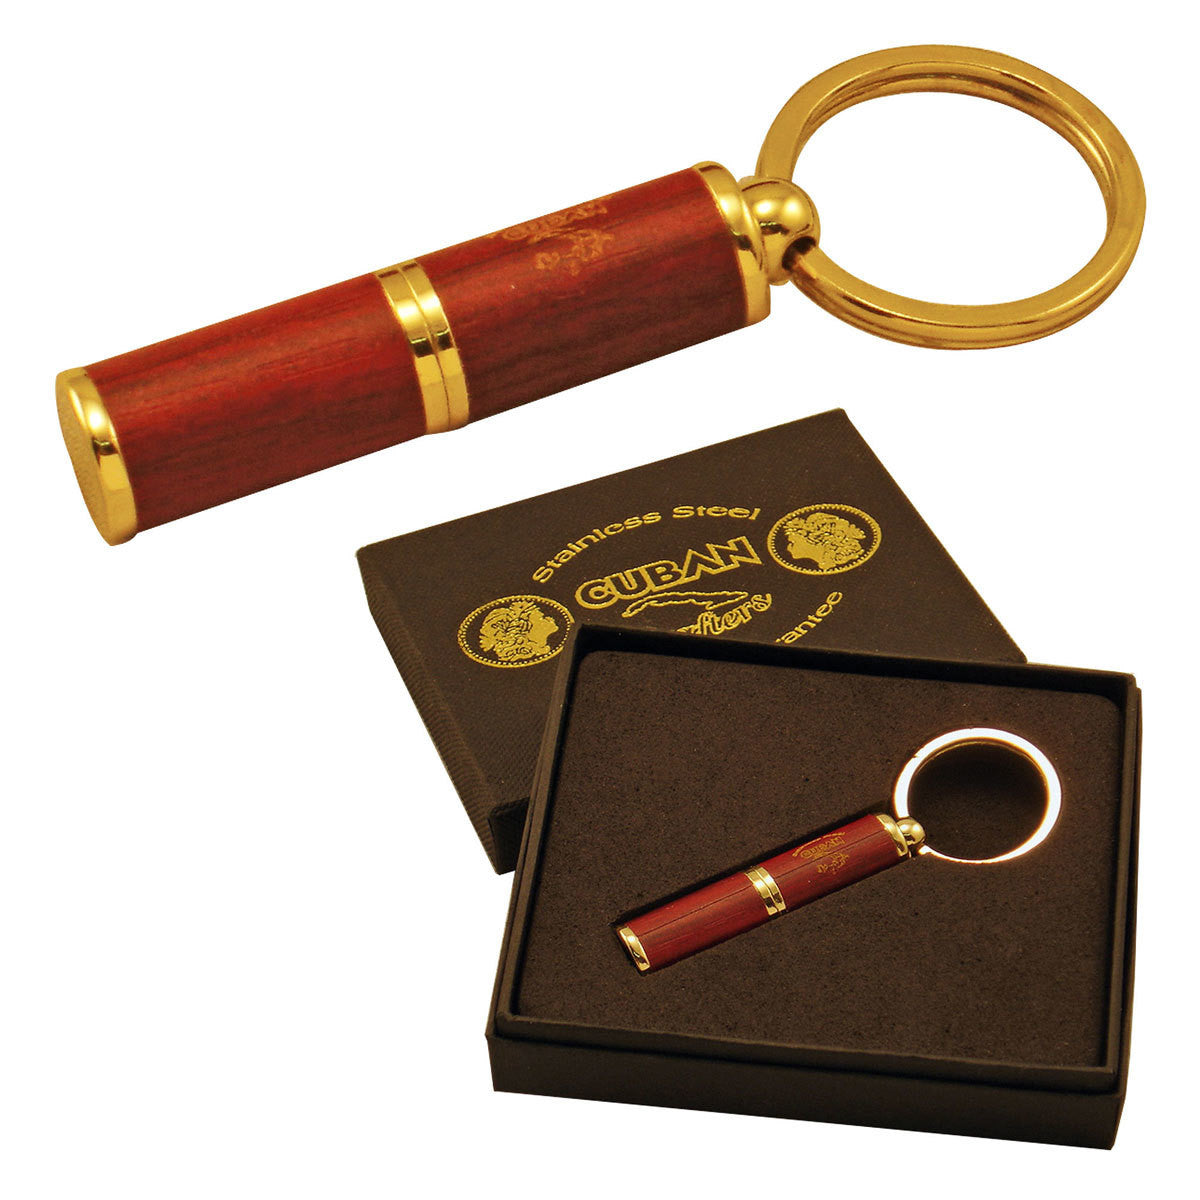 Punch Cigar Cutters all Stainless Steel Blade Cutter with RoseWood Body - Humidors Wholesaler